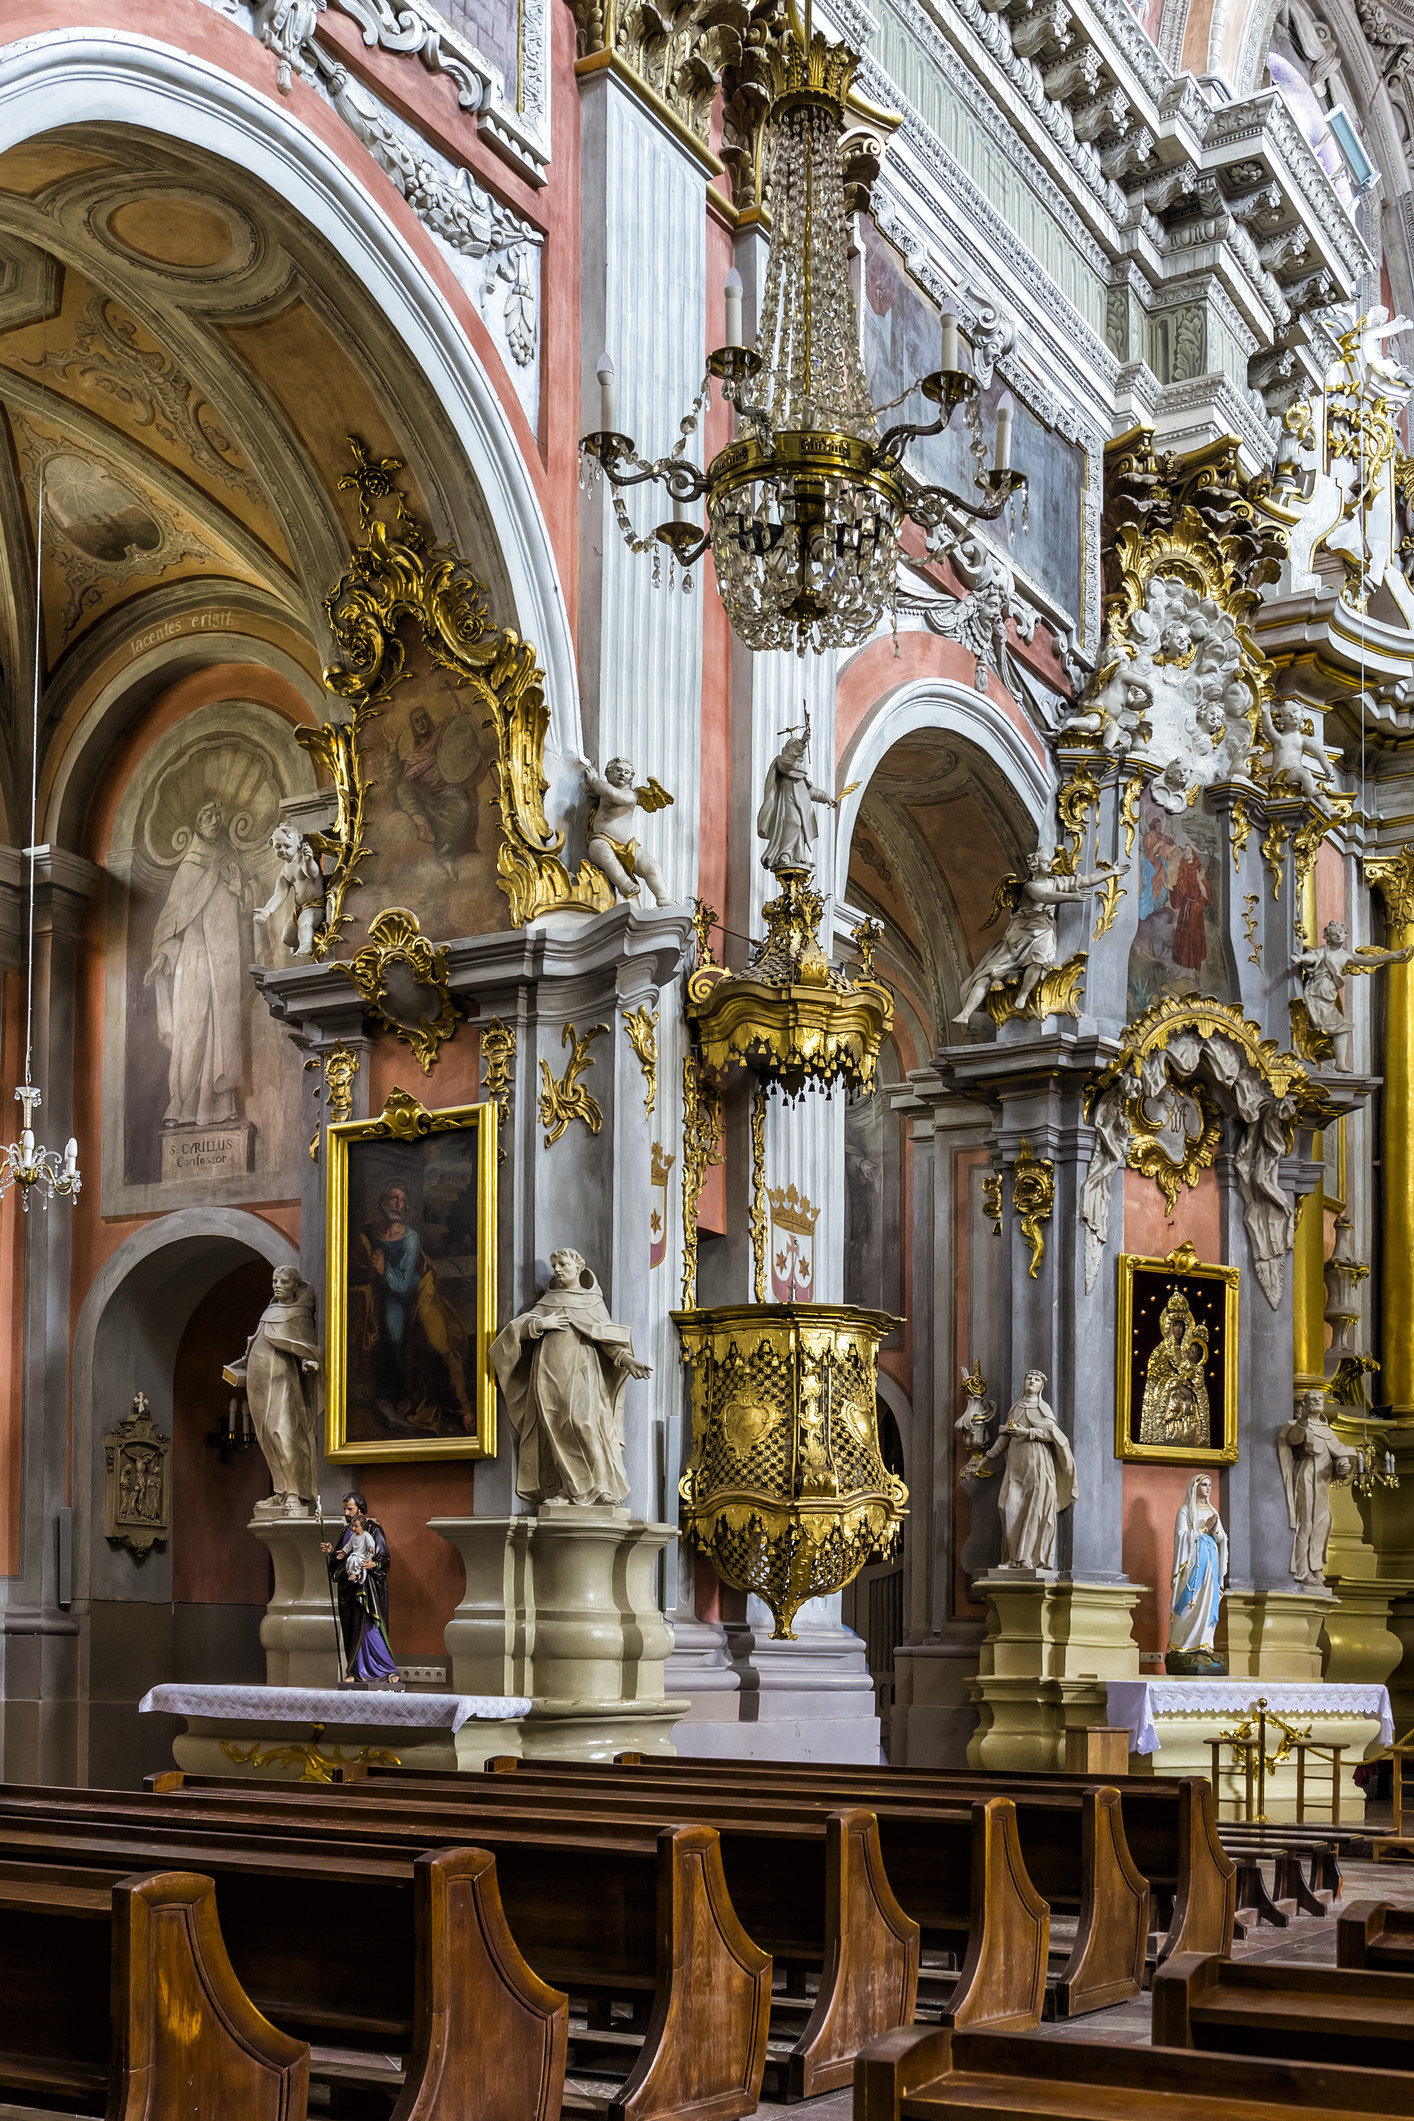 Trip Ideas building Church place of worship altar cathedral basilica ancient history chapel facade synagogue monastery